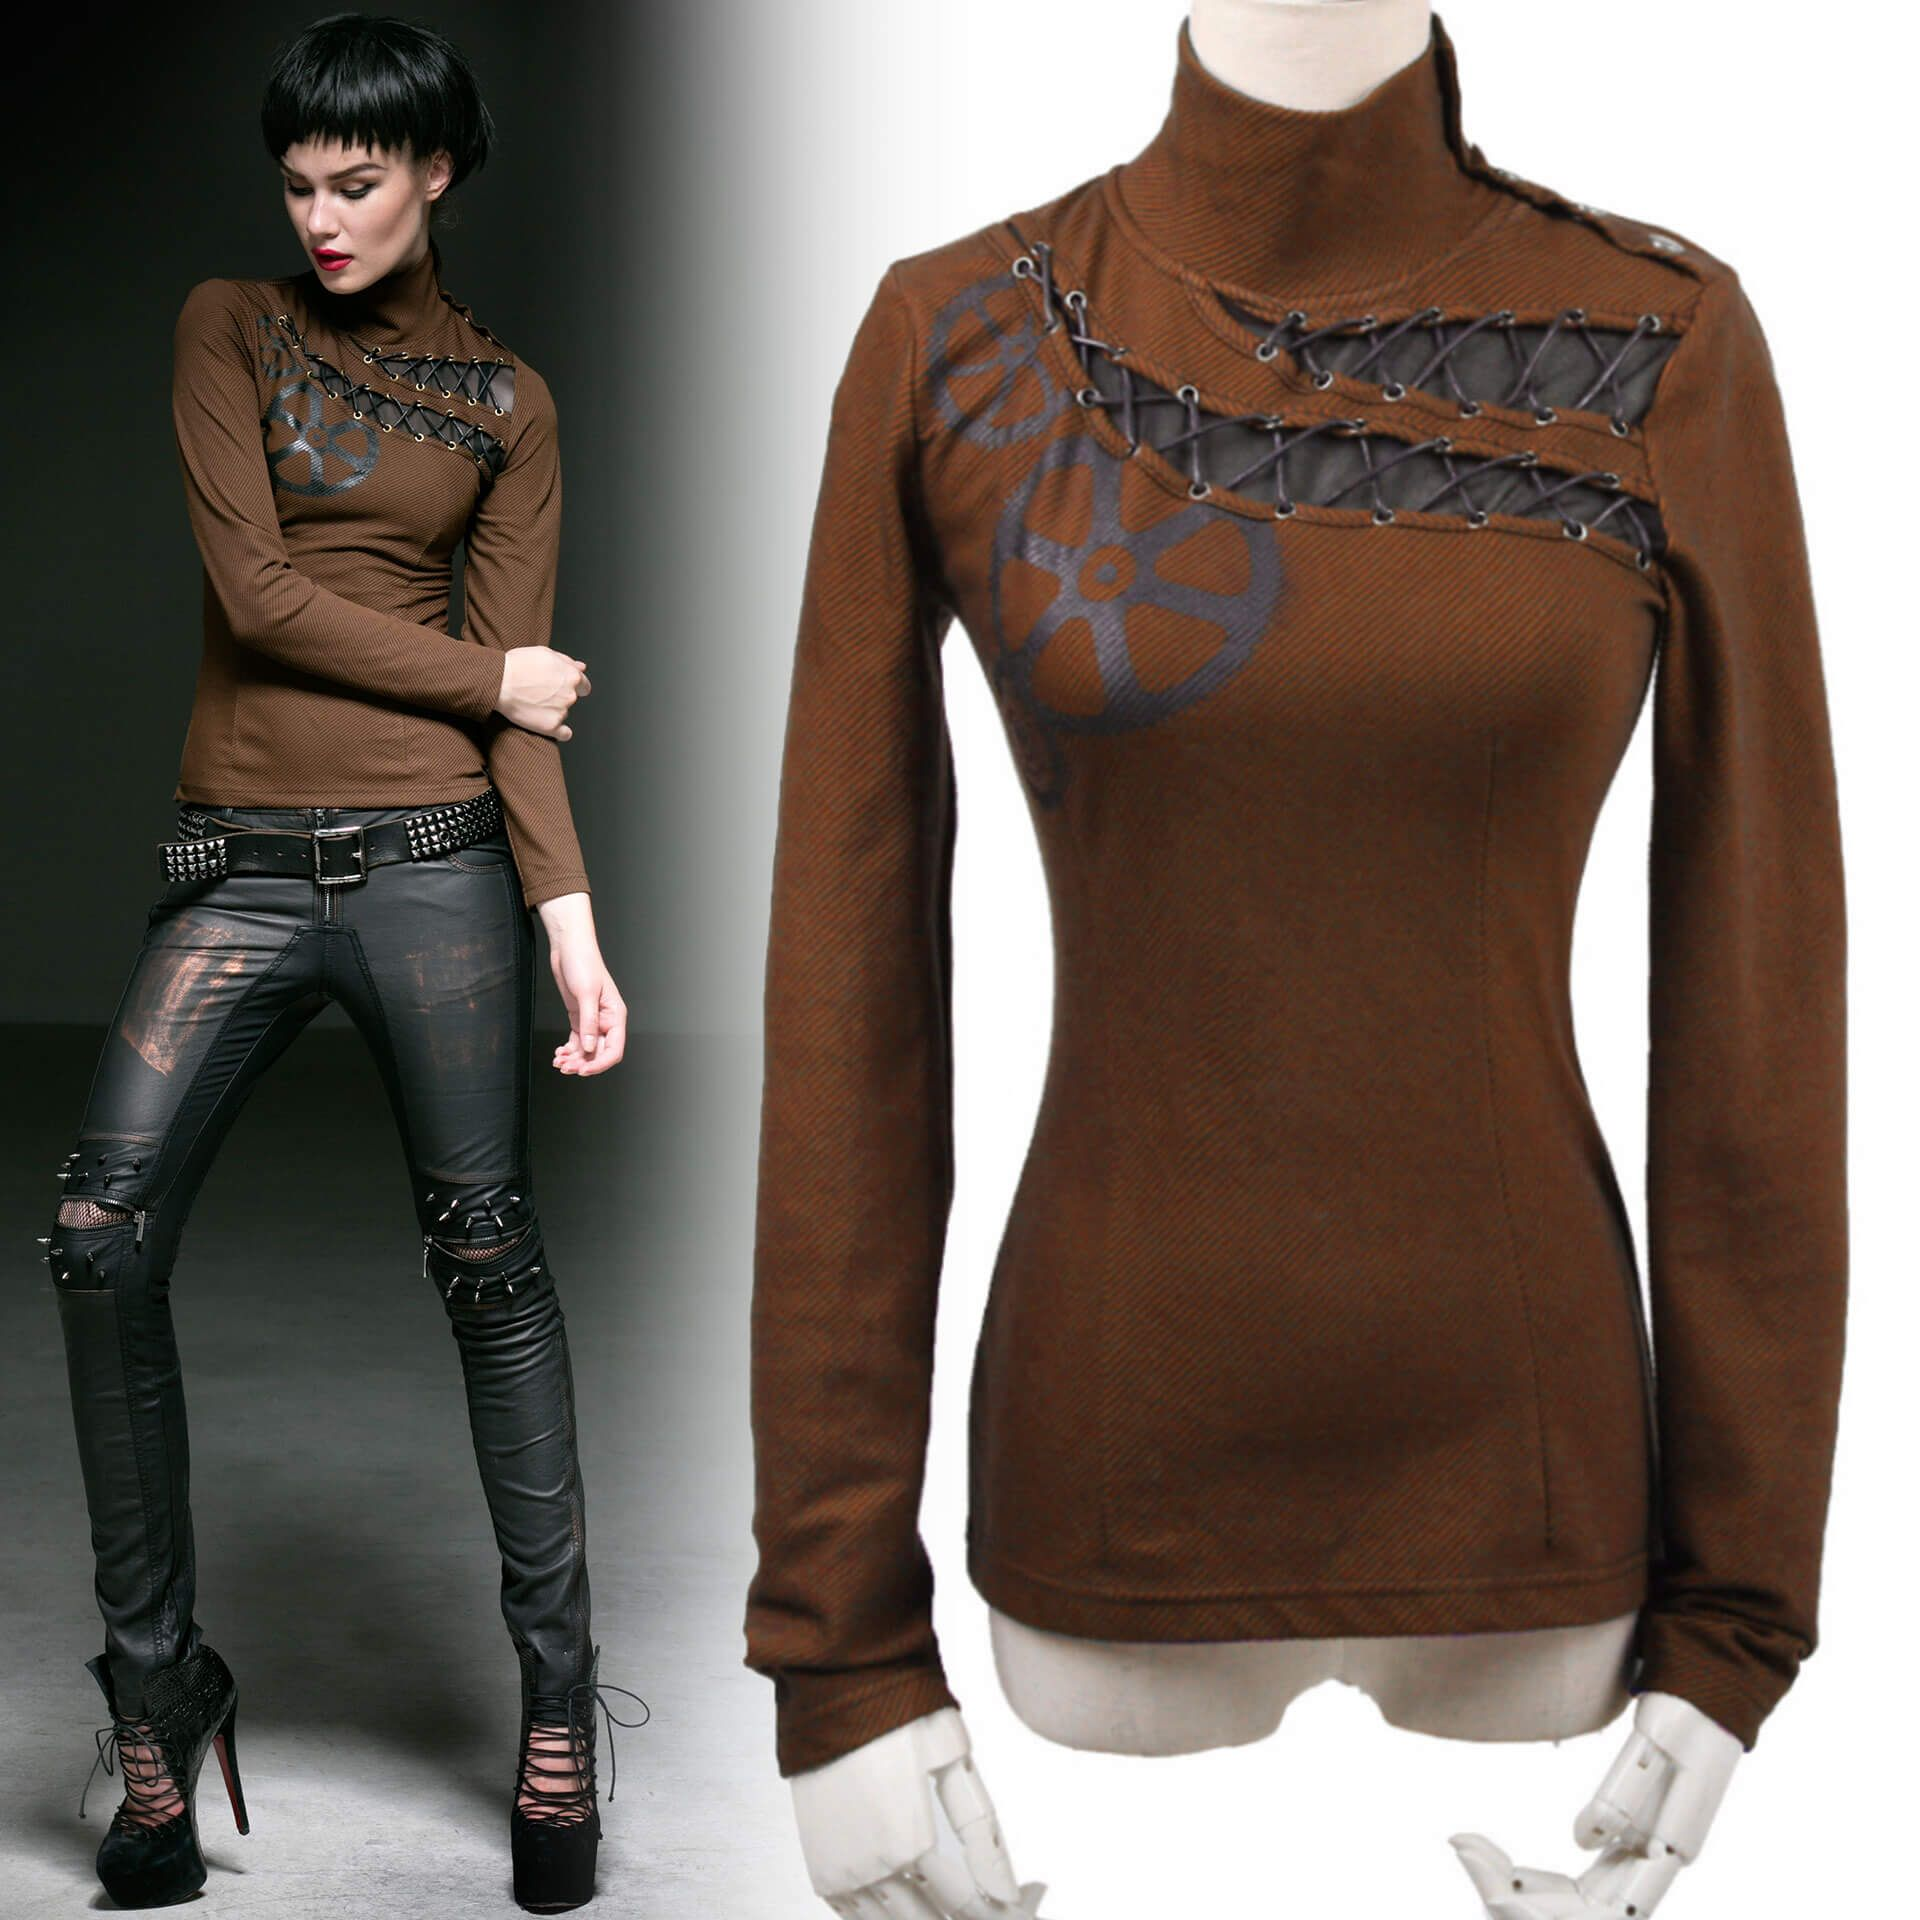 women's The Gears Top by PUNK RAVE brand, code: T-362/CO